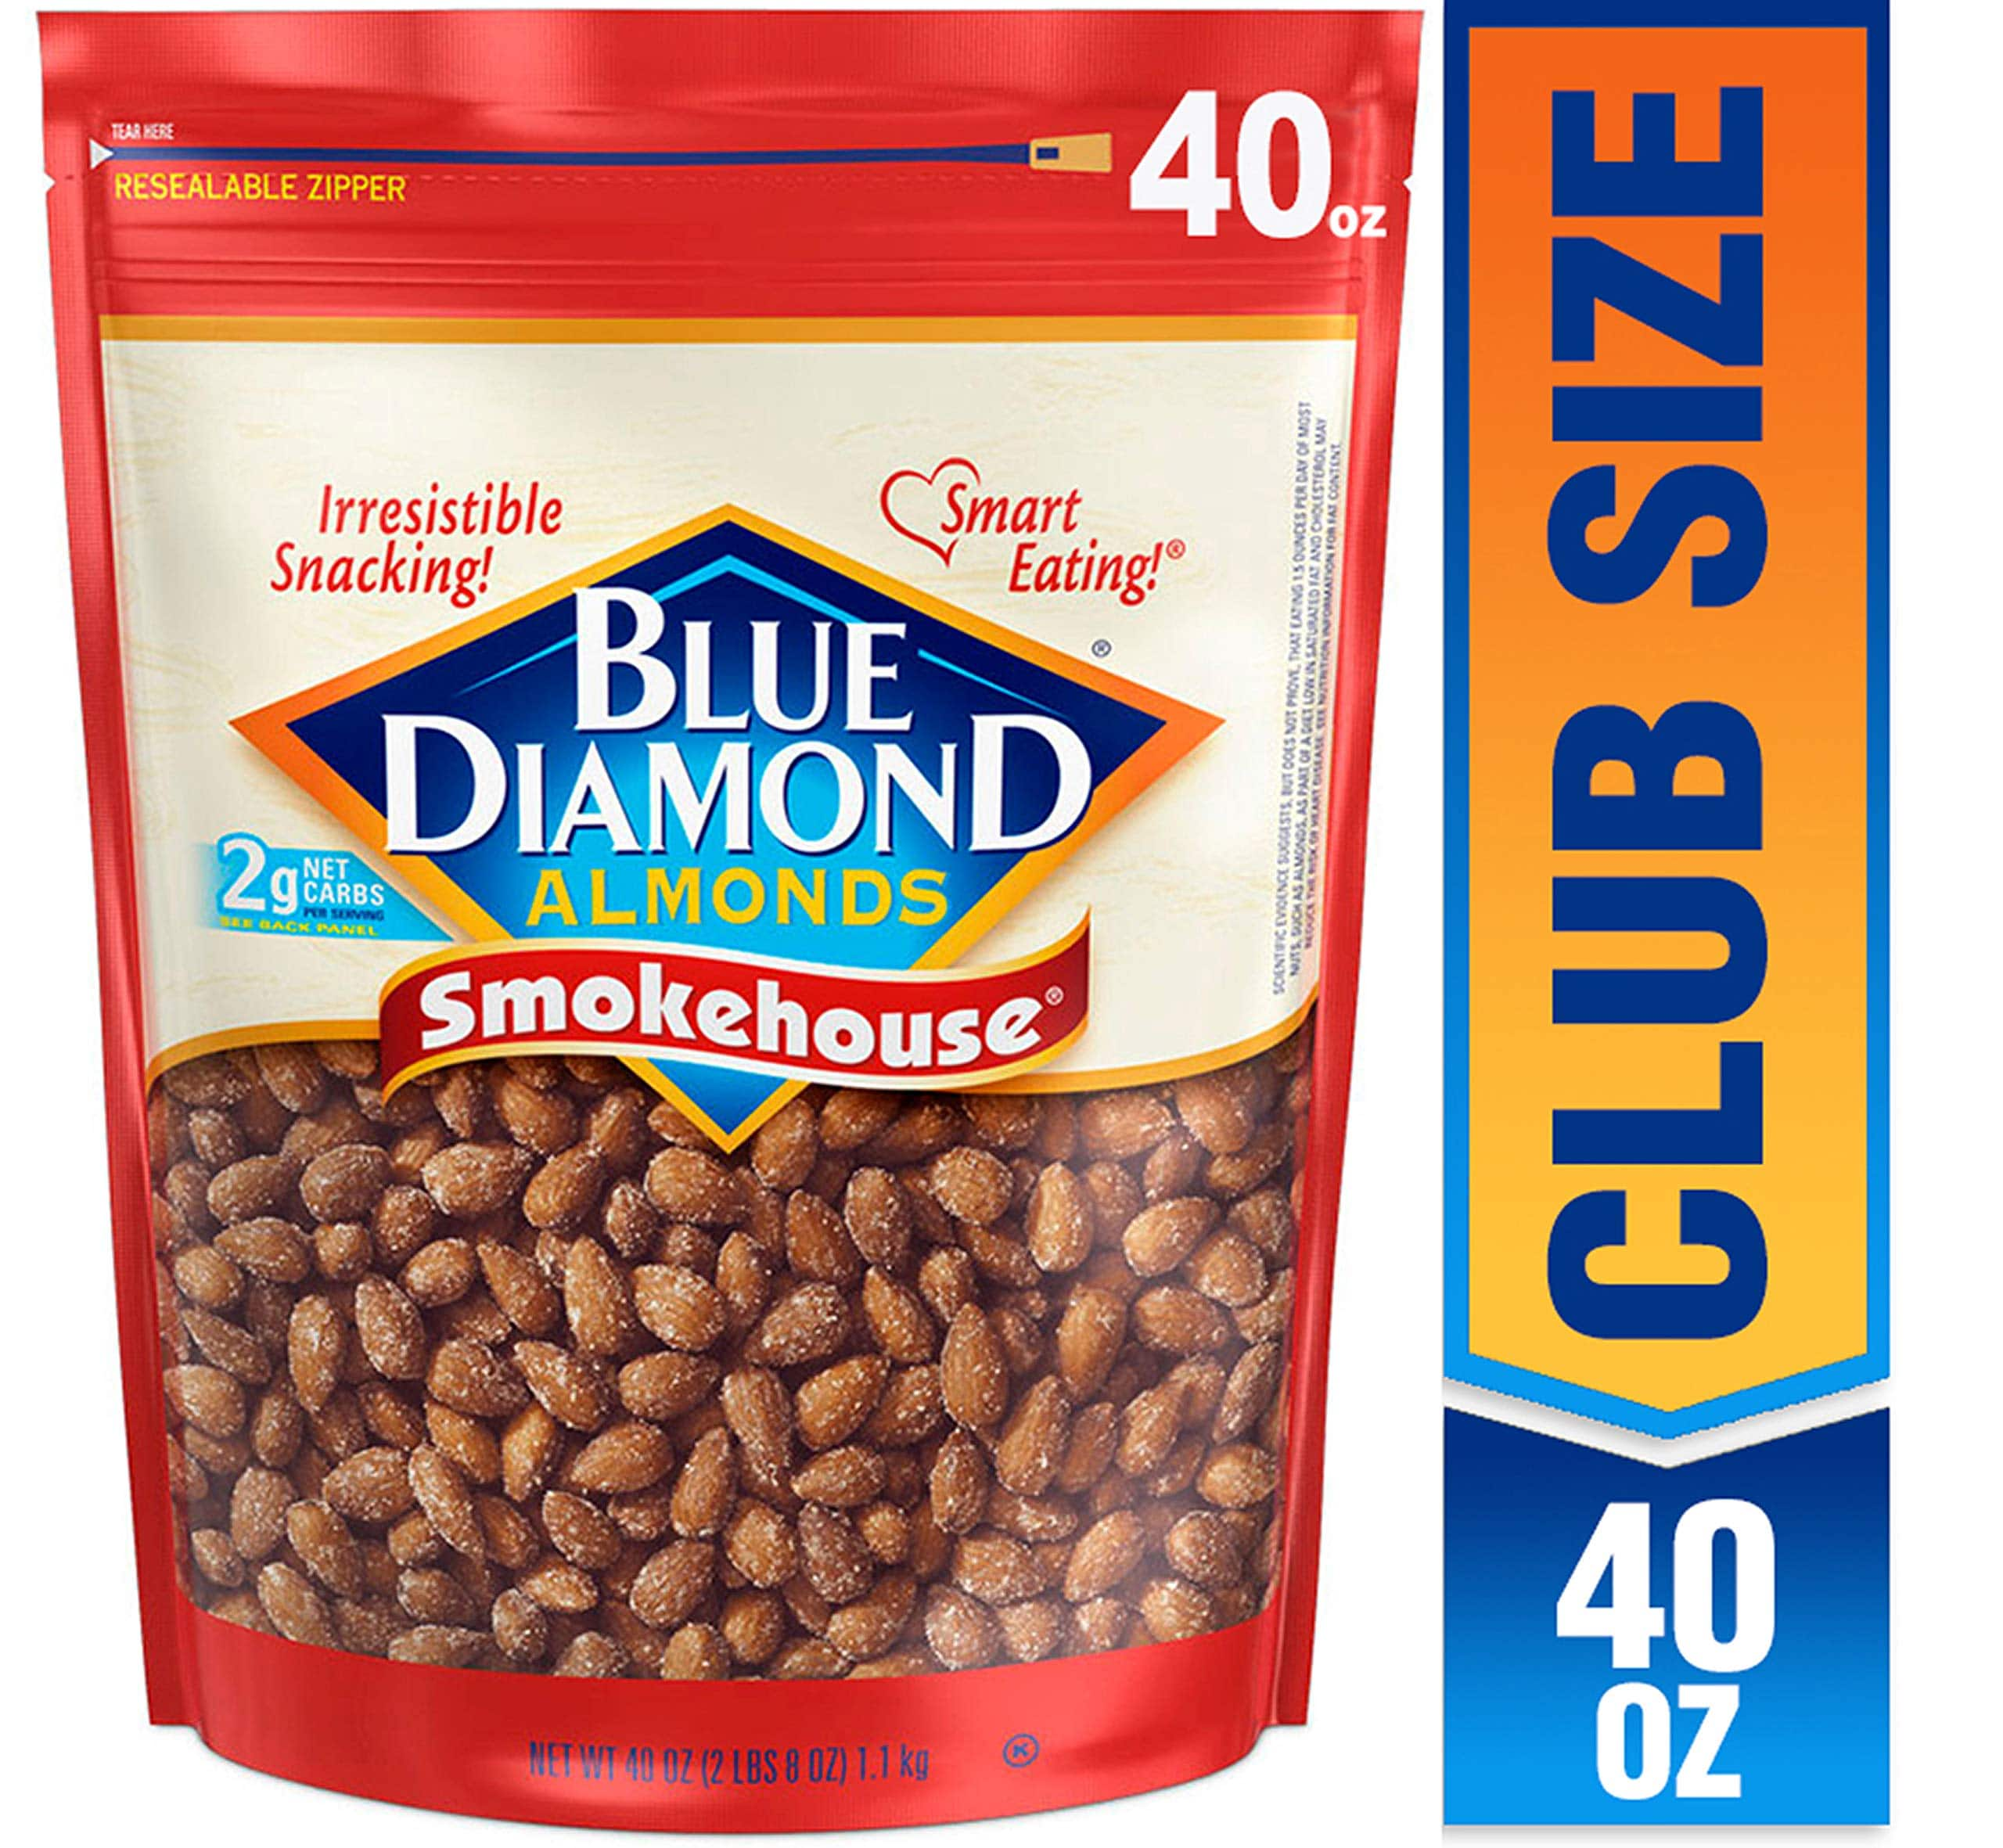 Blue Diamond Almonds Smokehouse Flavored Snack Nuts & More, 40 Oz Resealable Bag (Pack of 1)~$9.48 With S&S @ Amazon~Free Prime Shipping!